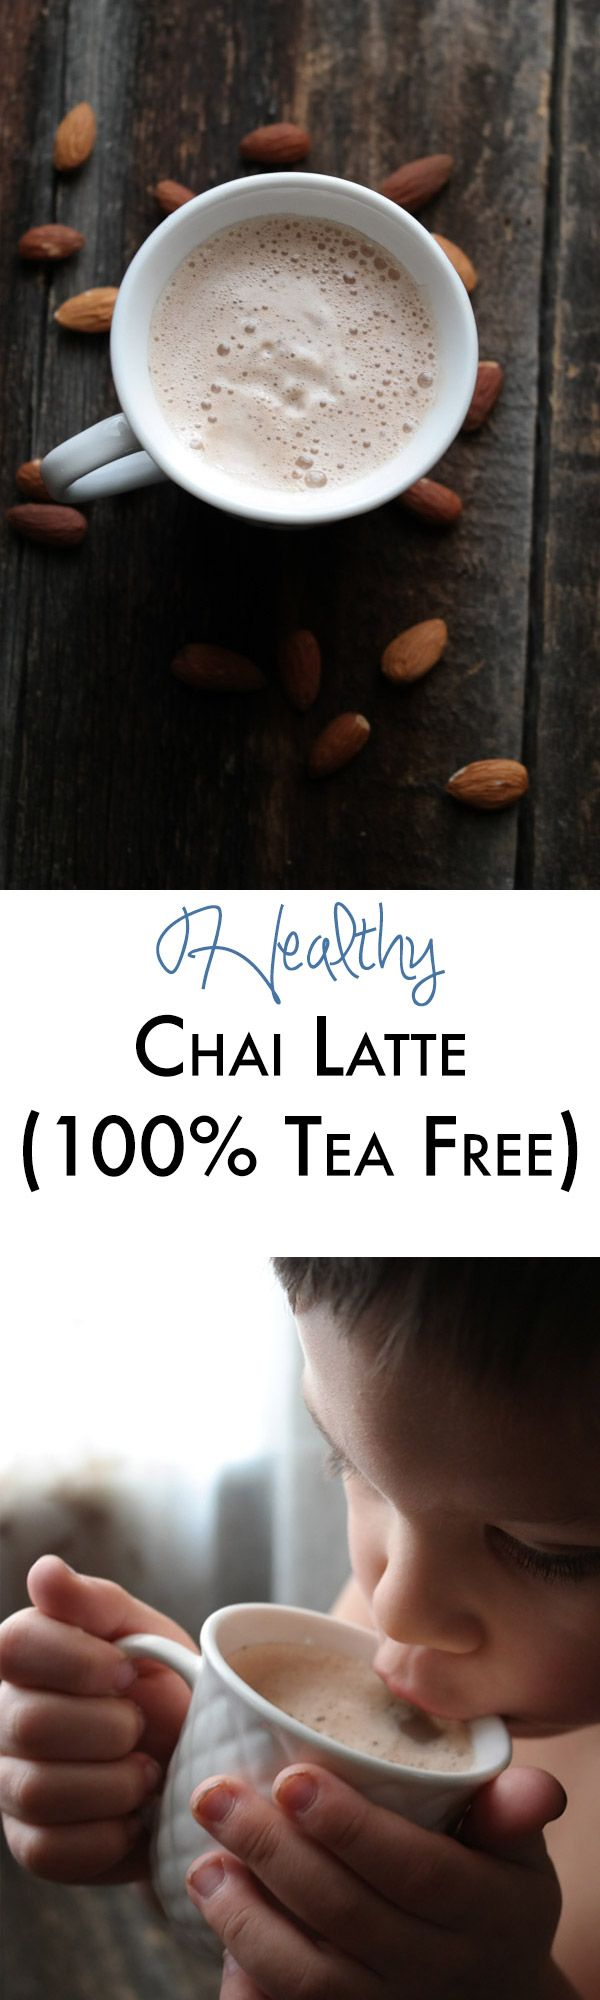 This healthy chai latte is easy to make 100% raw and is a great caffeine free alternative to the sugar filled tea lattes! My kiddos love it too!